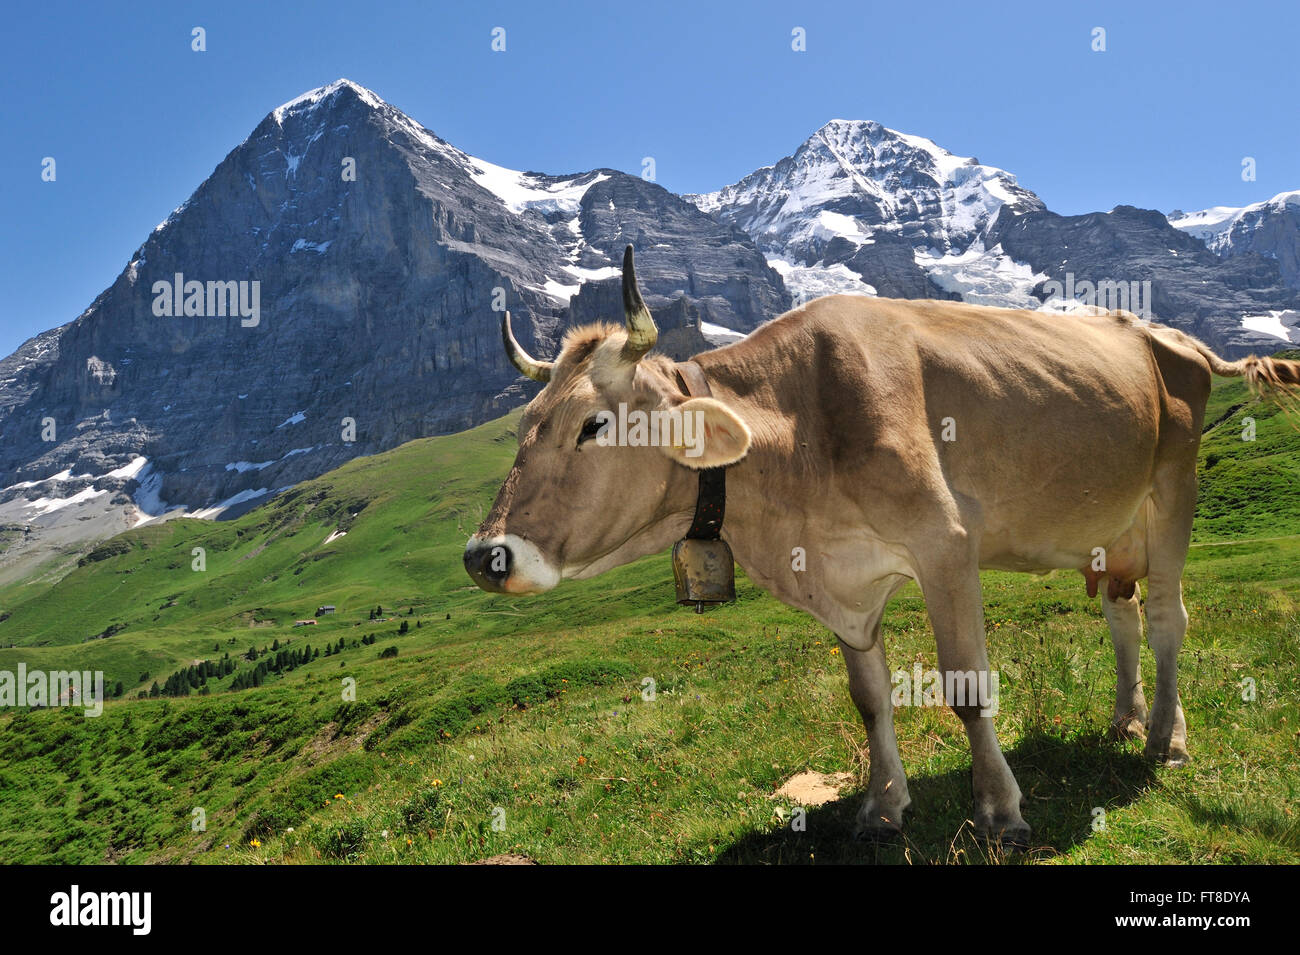 The Eiger mountain and brown Alpine cow (Bos taurus) with cowbell in alpine meadow, Swiss Alps, Switzerland - Stock Image